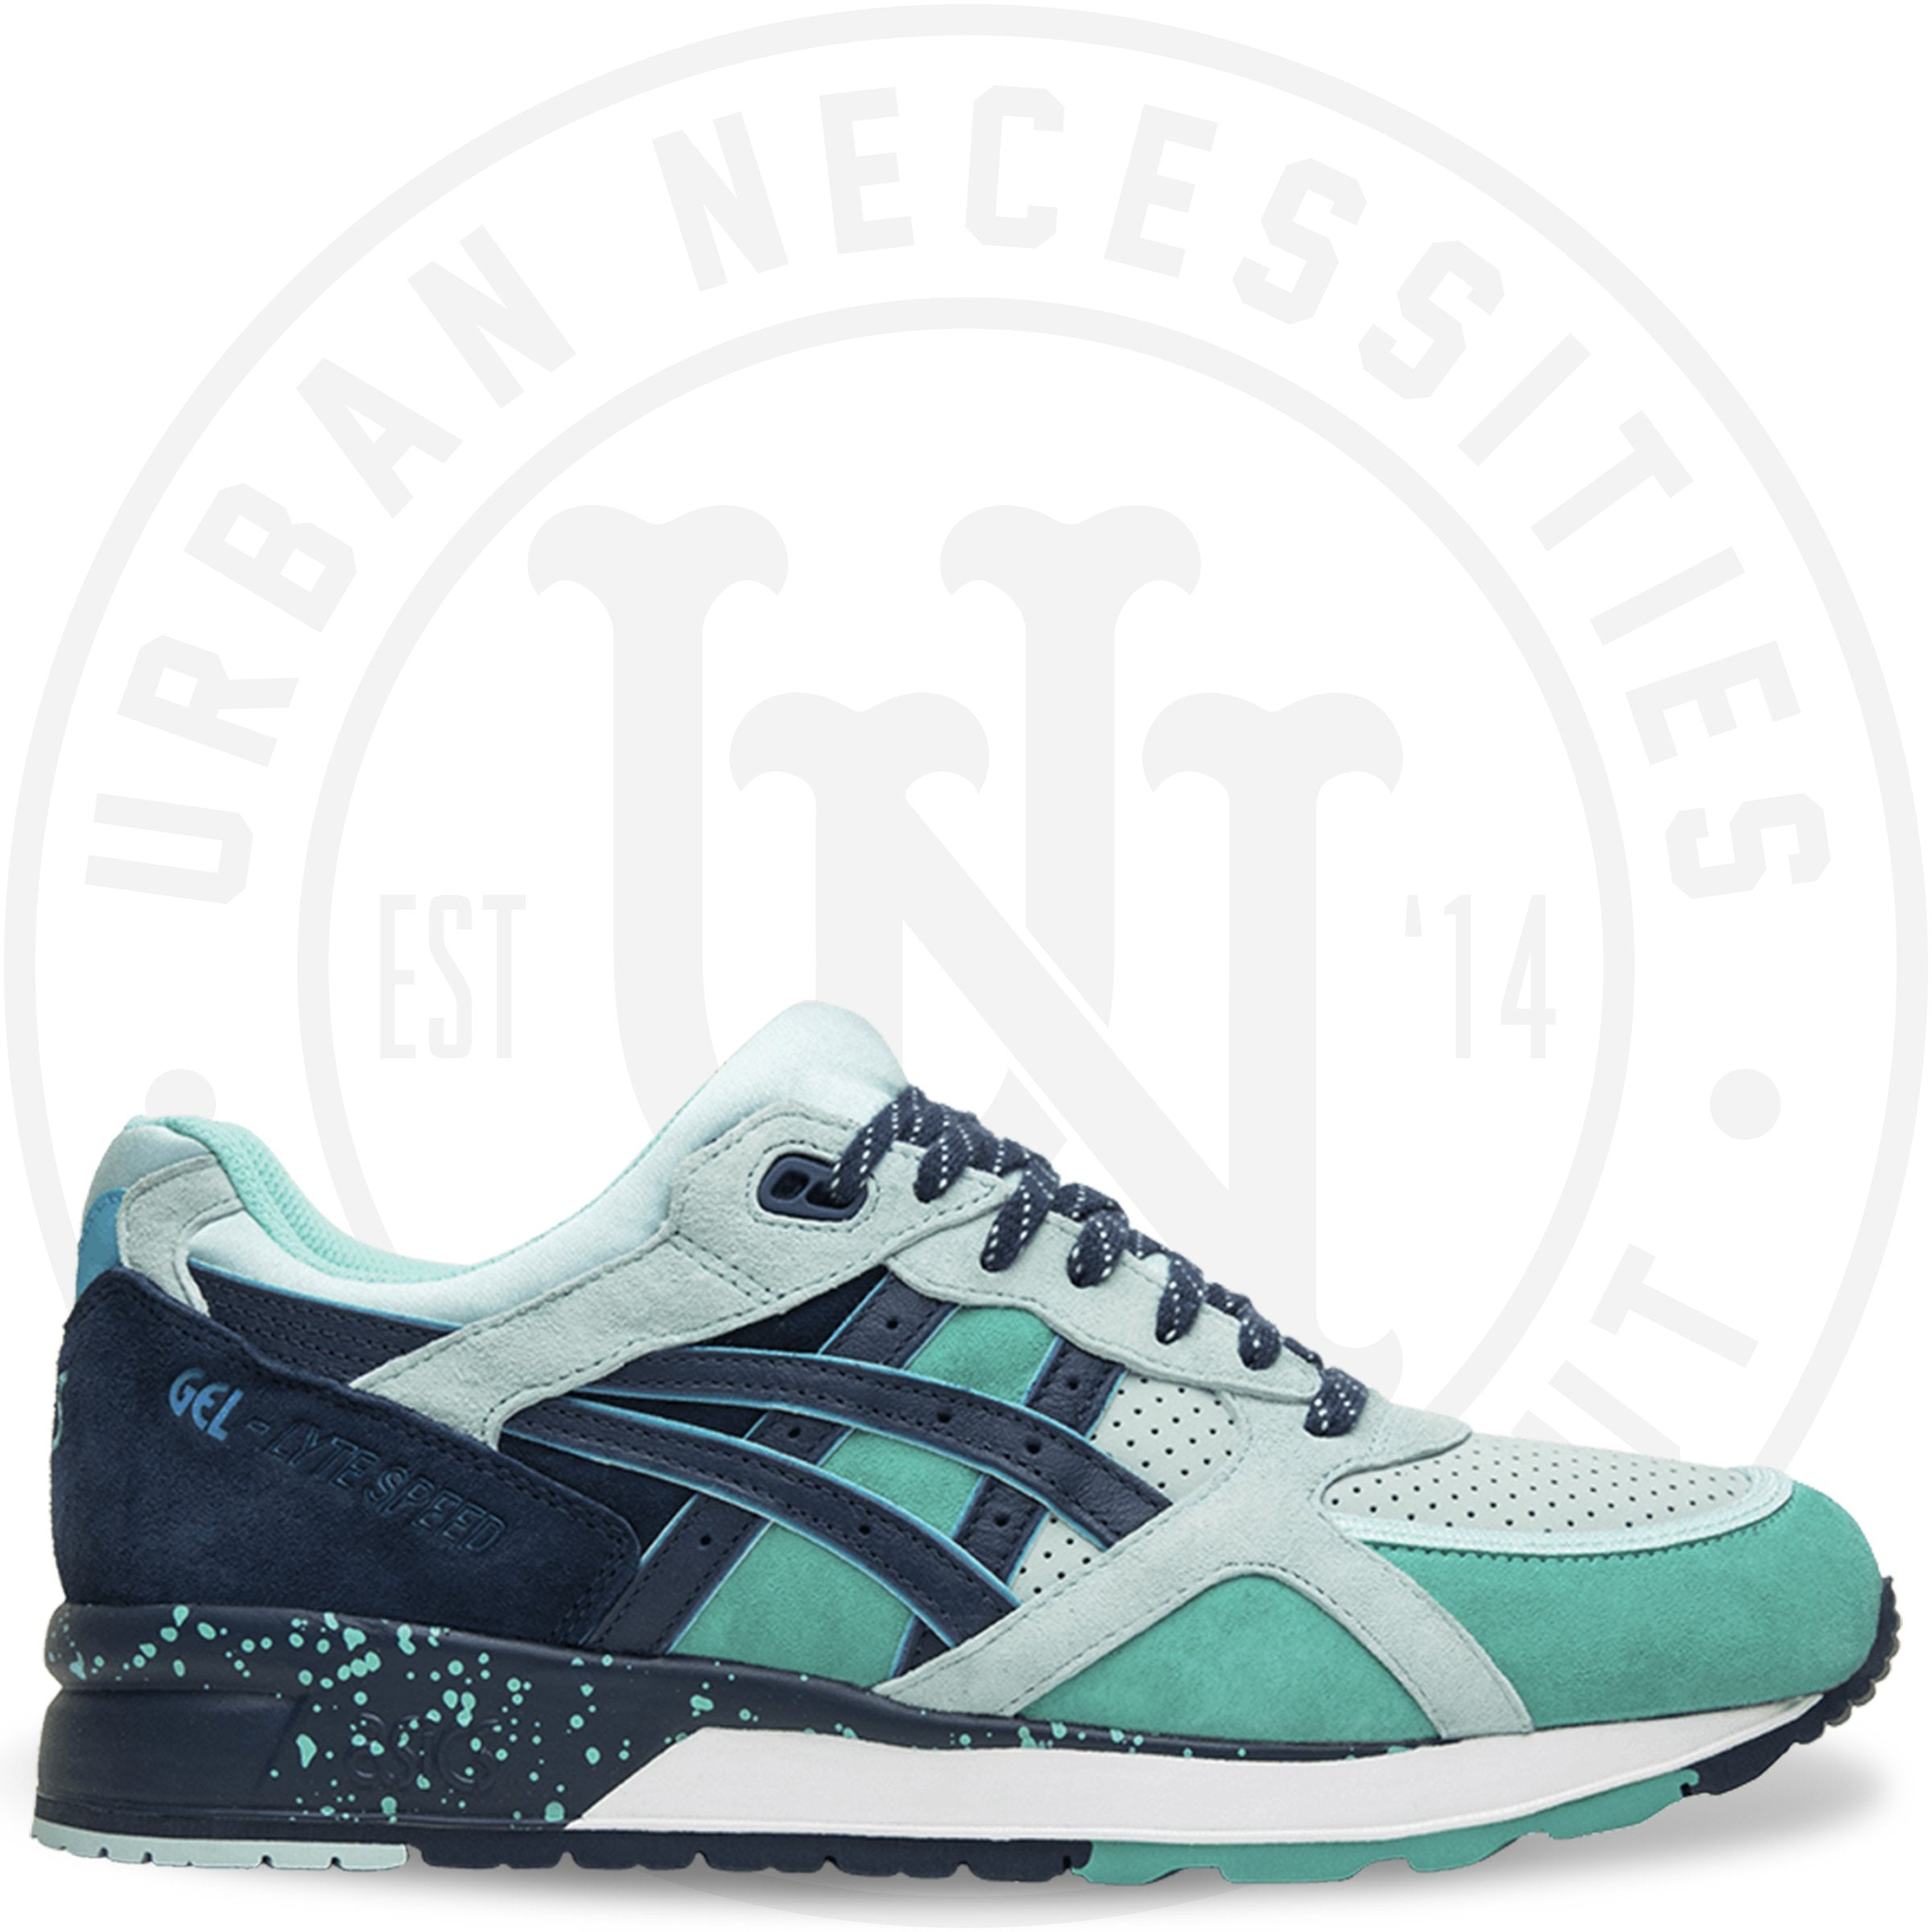 Ubiq x Gel Lyte Speed 'Cool Breeze'- H54EK 6050